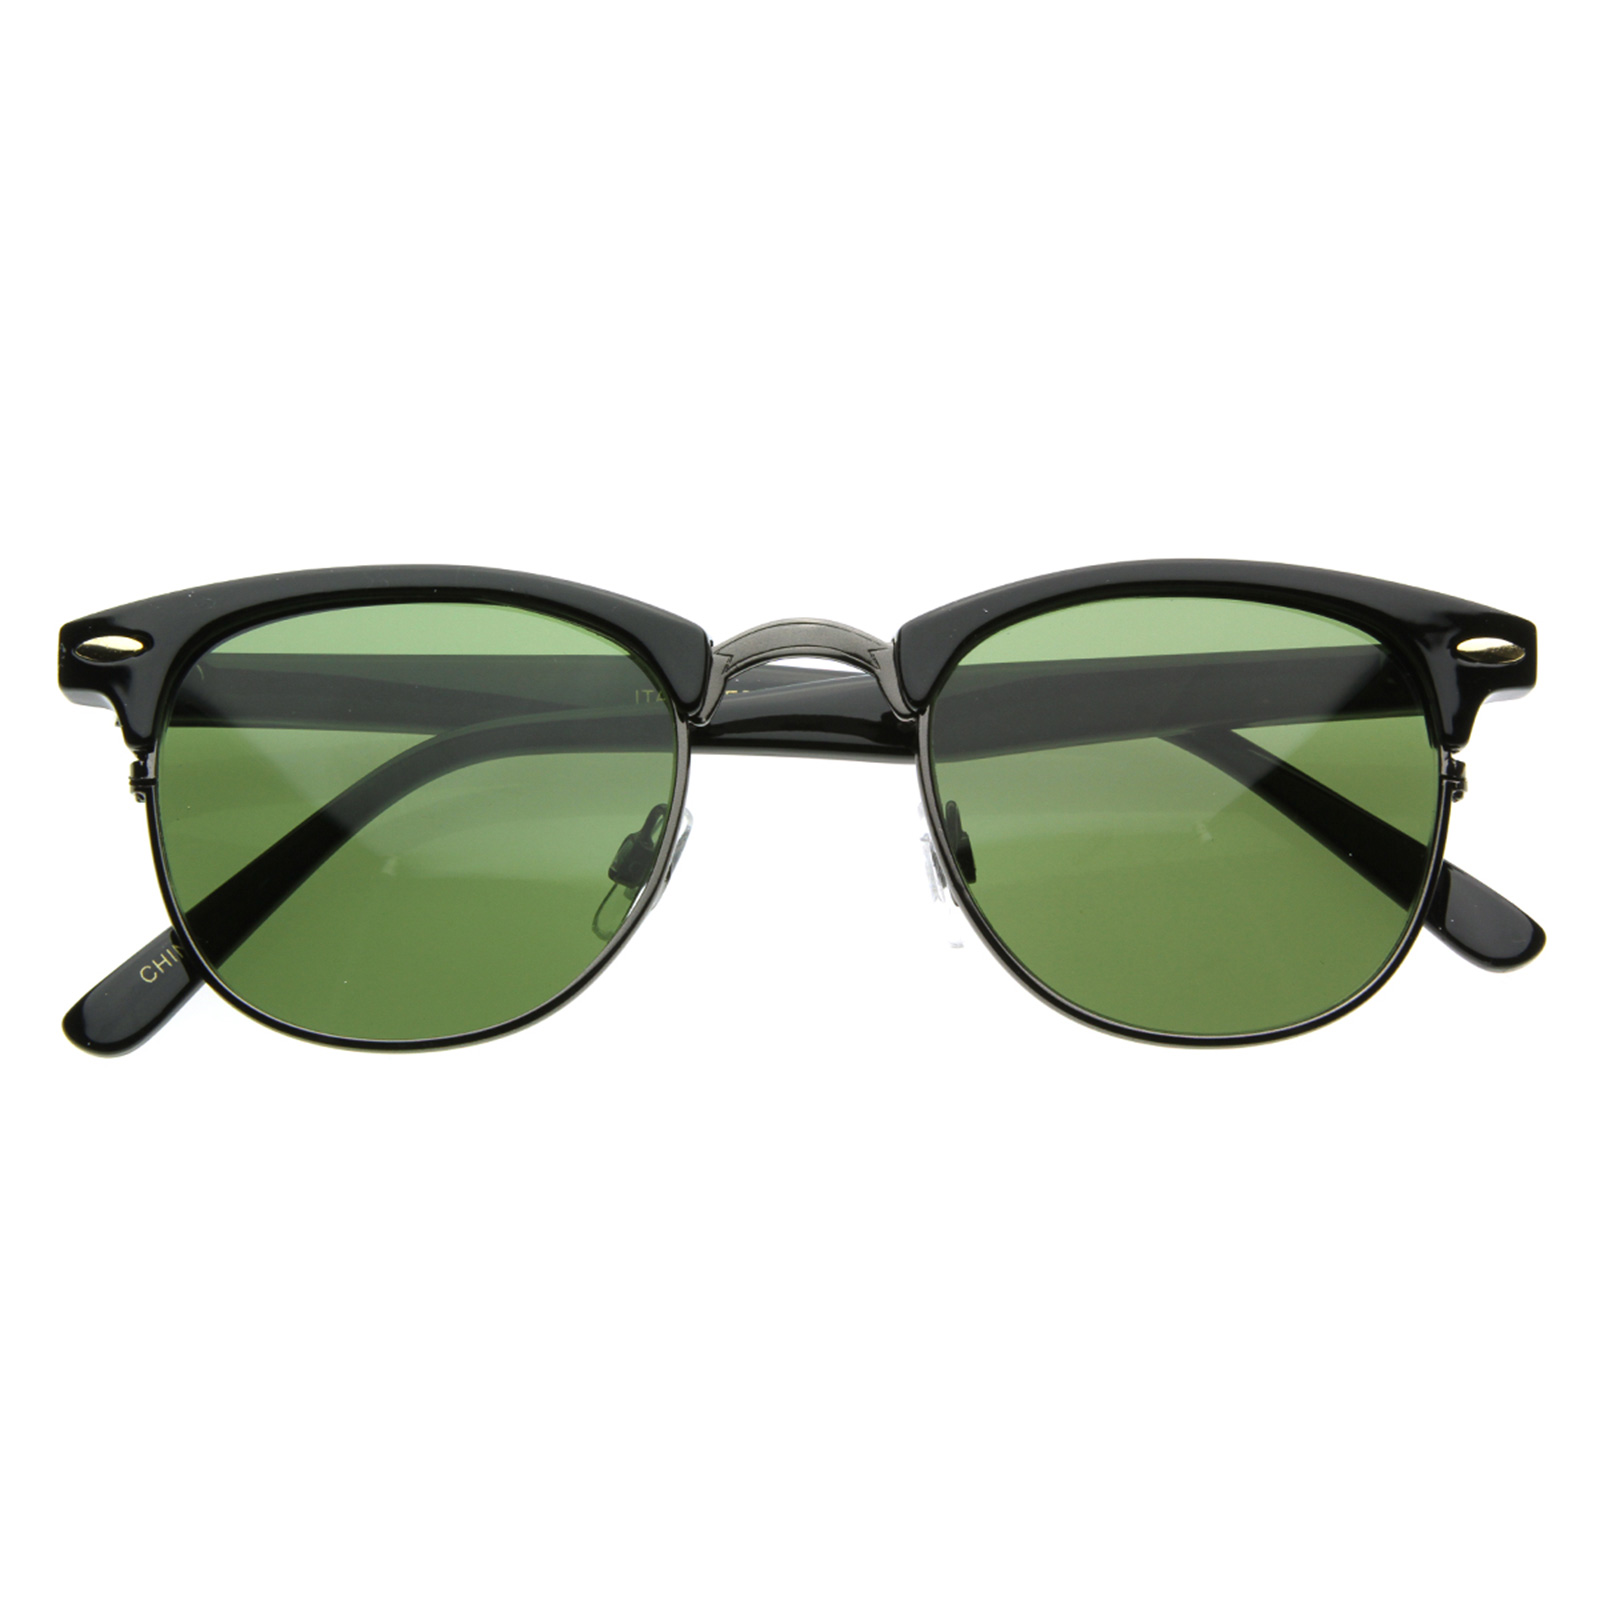 Half Frame Clubmaster Glasses : Vintage Half Frame Clubmaster Shades Style Classic Optical ...